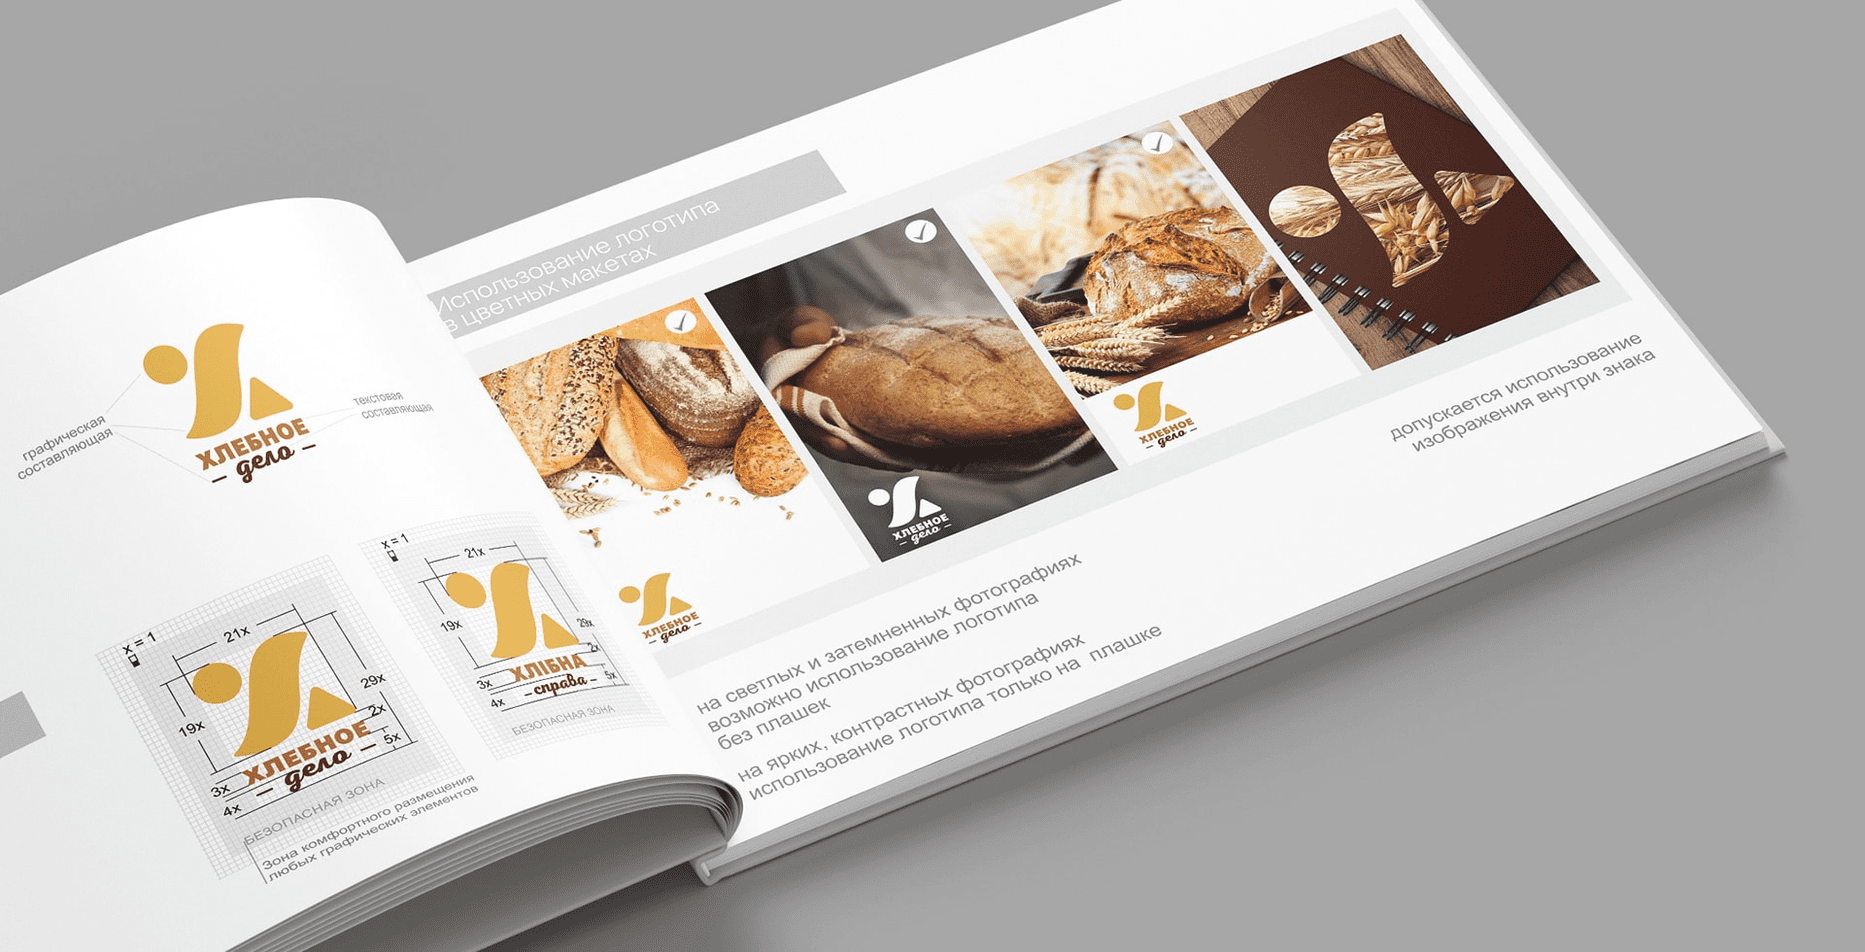 Case: logo design, branding and marketing kit for the bread business — Rubarb - Image - 4